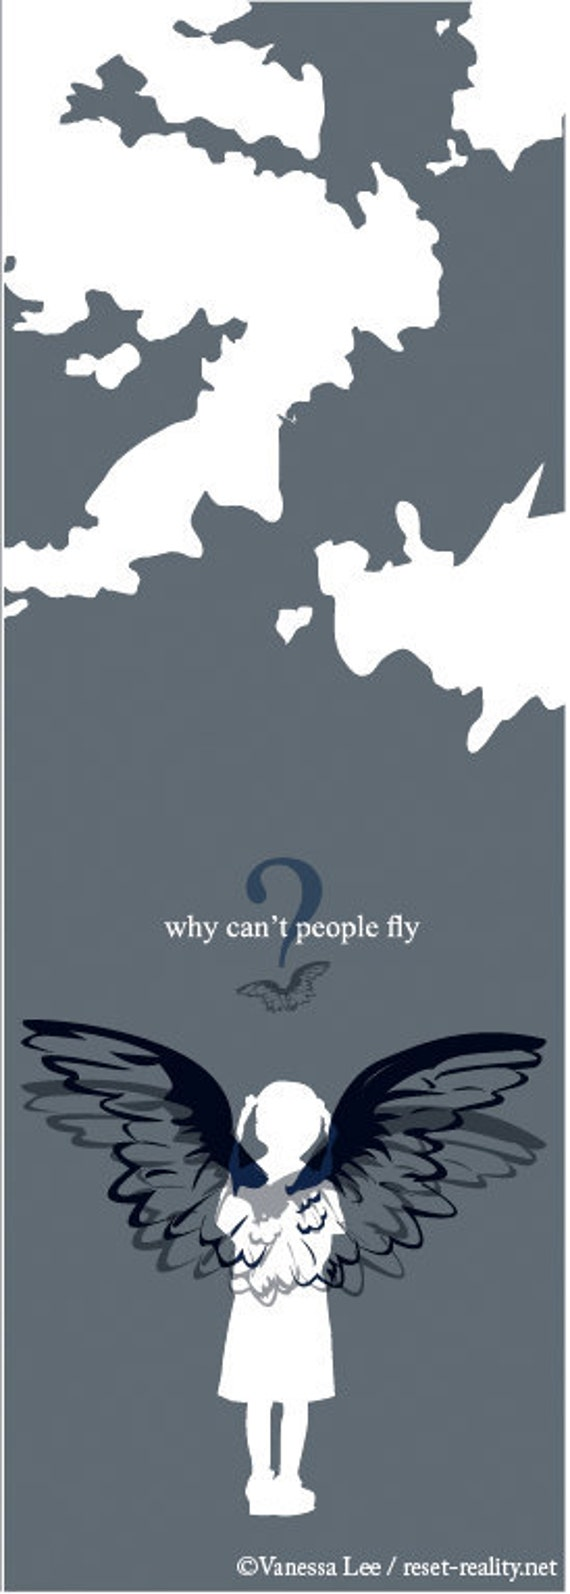 Original Handmade Children's Book, Digital Illustration, Why Can't People Fly